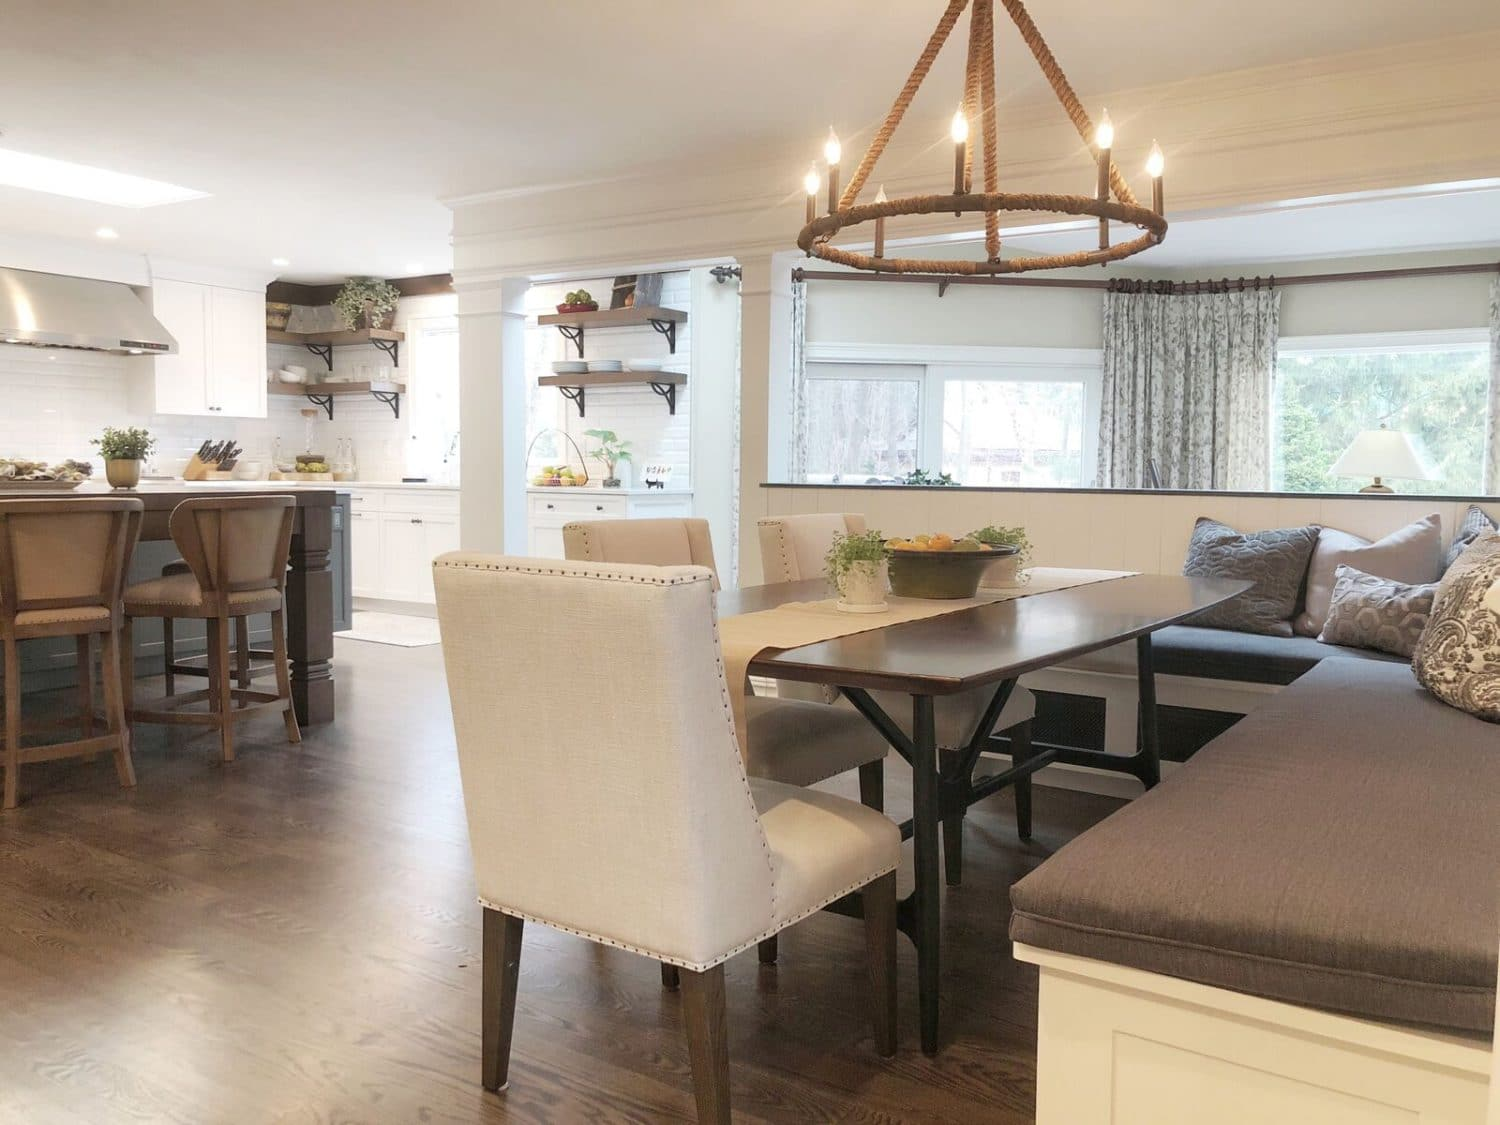 kitchen interior design: chandelier in rumson nj